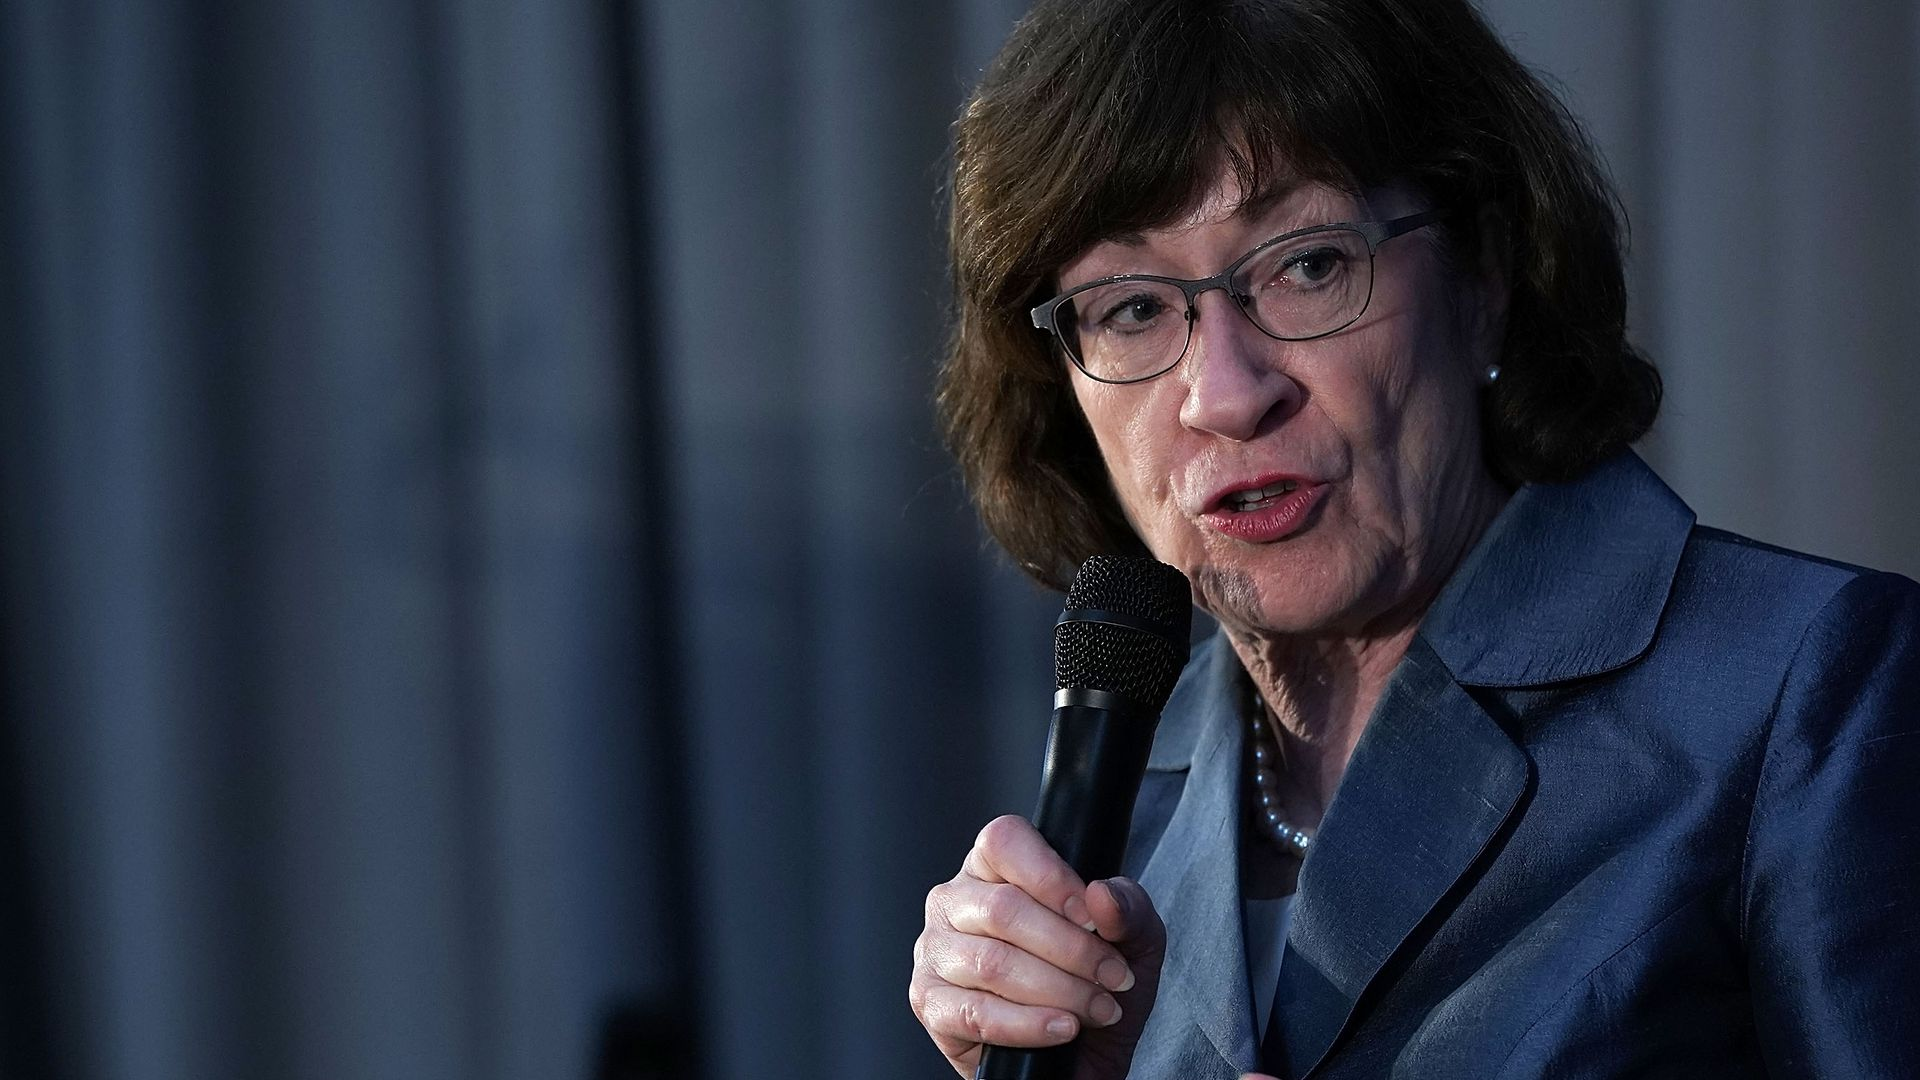 Sen. Susan Collins has urged Attorney General Bill Barr not to kill the Affordable Care Act.